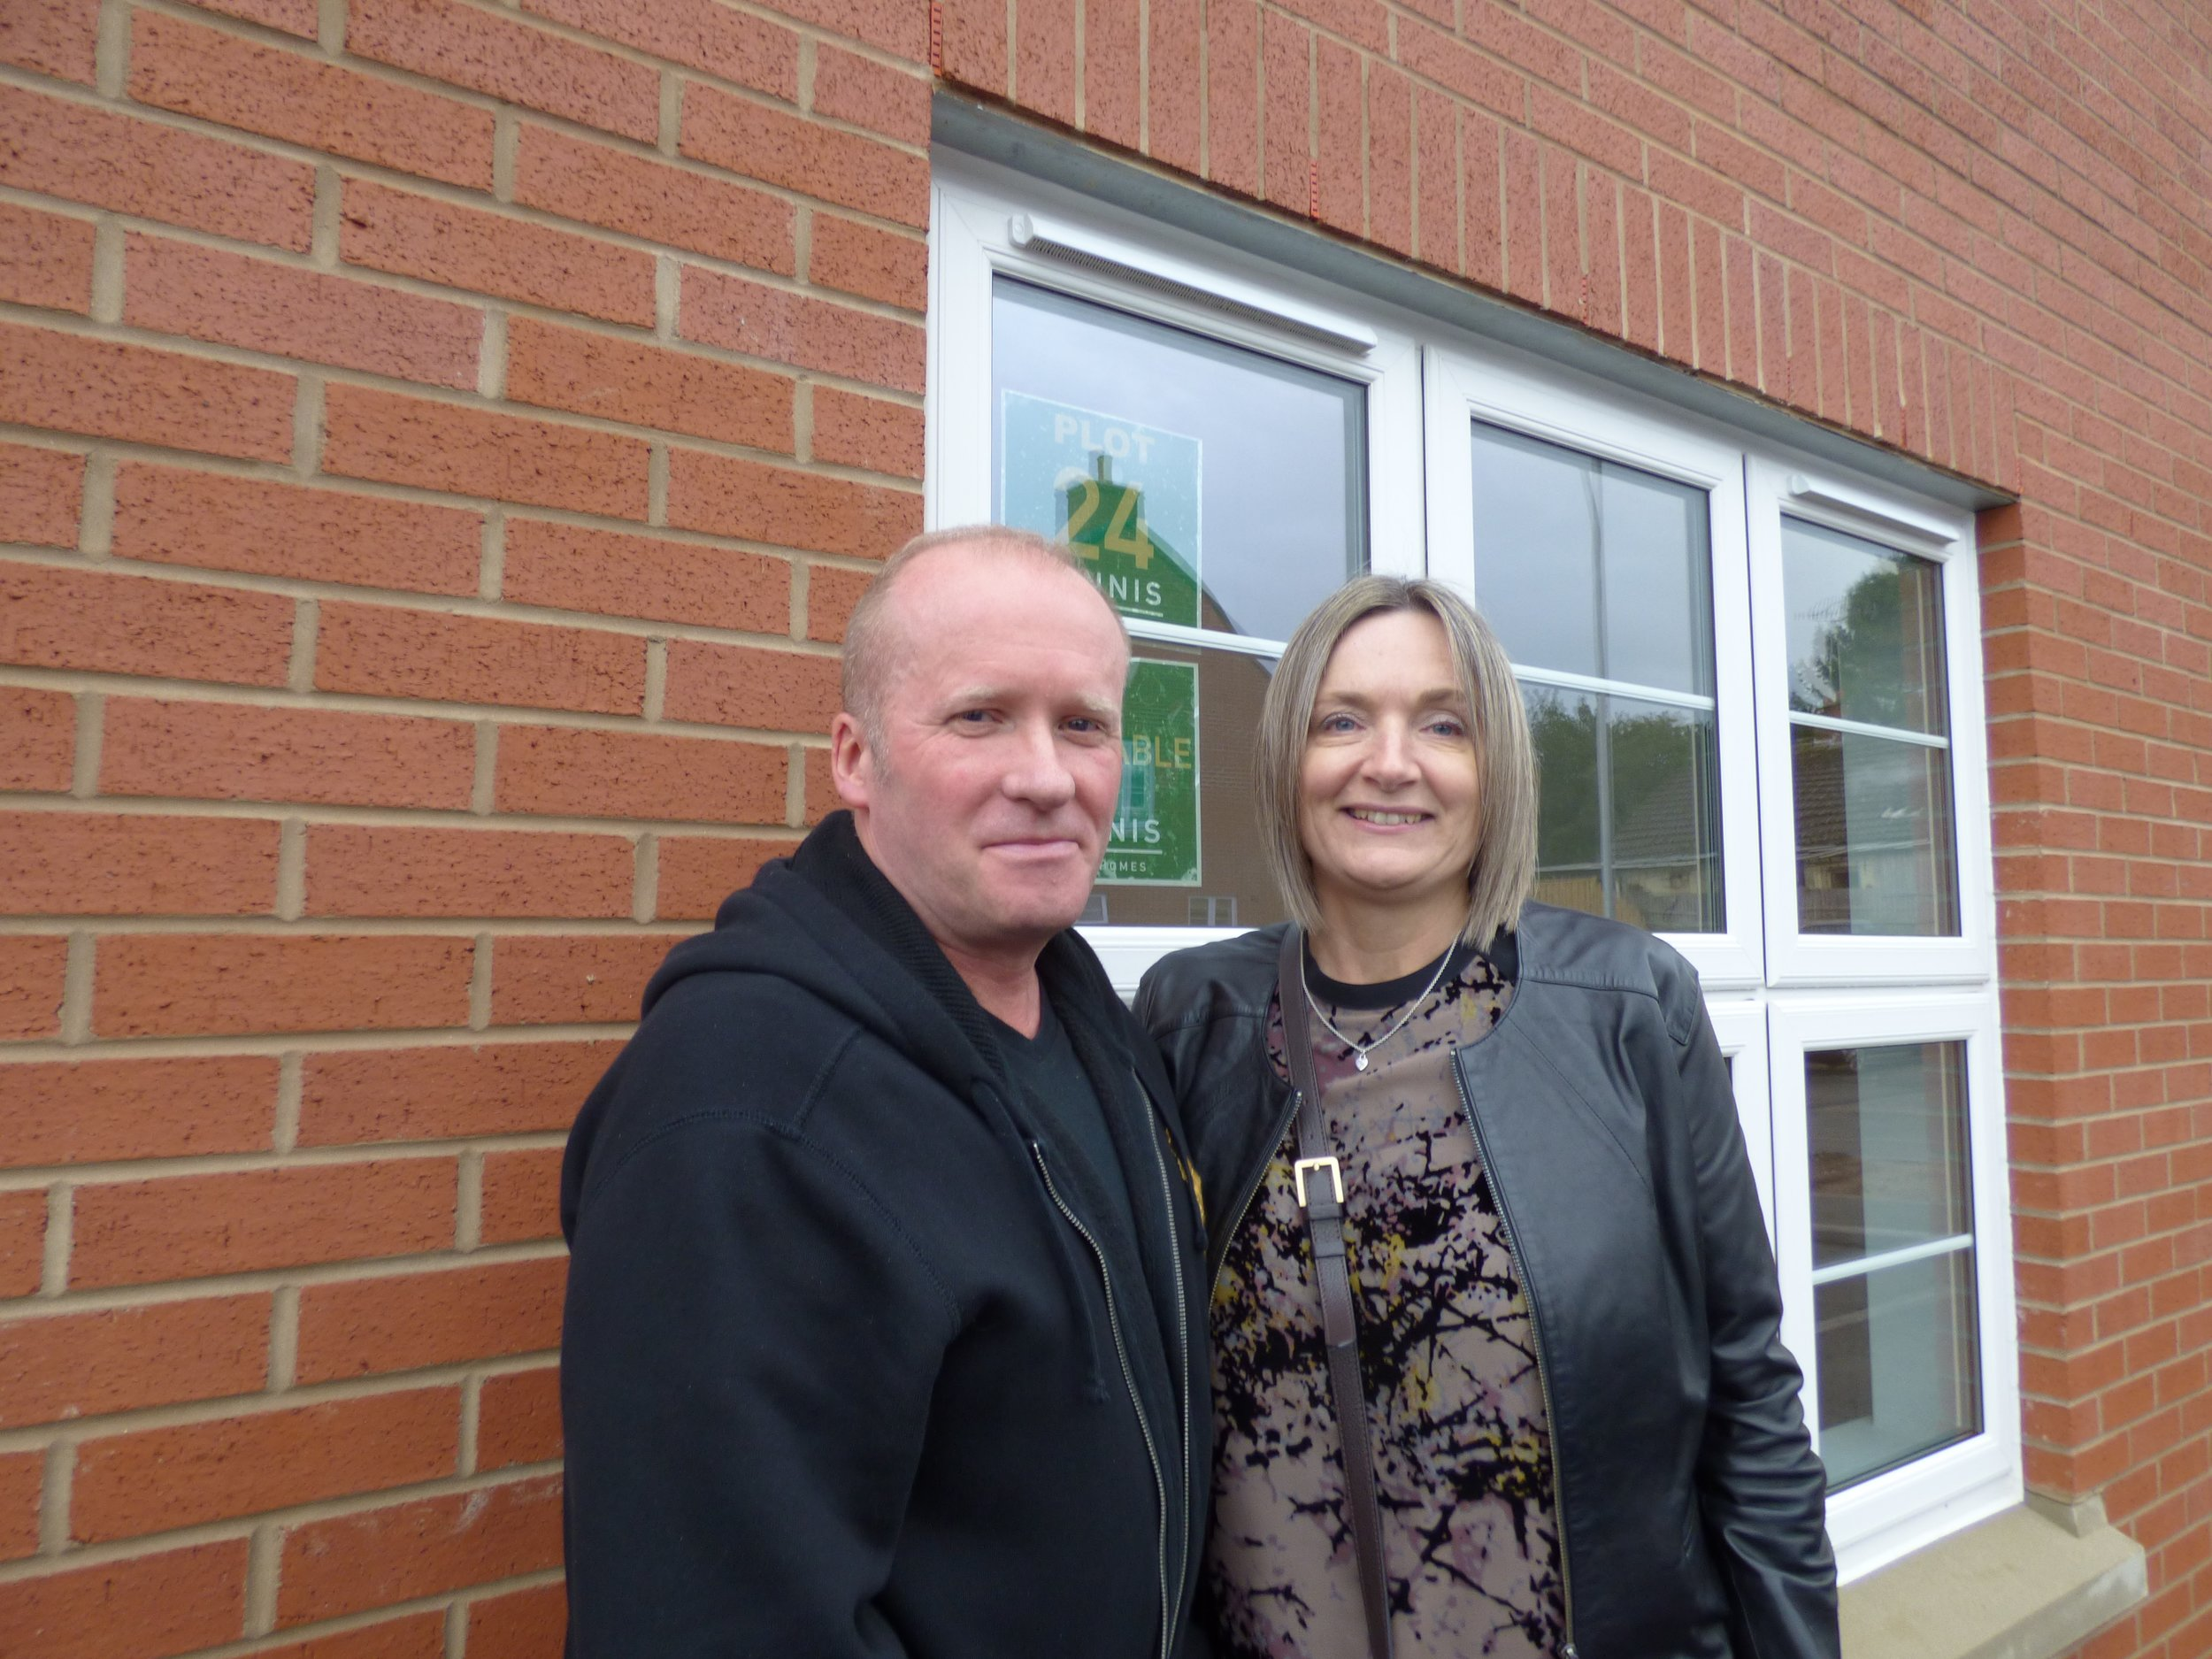 Chris Ball & Julie Frampton who reserved their new dream home after Saturday's Help to Buy event at Deer Park. Penguin PR: public relations, media and communications.